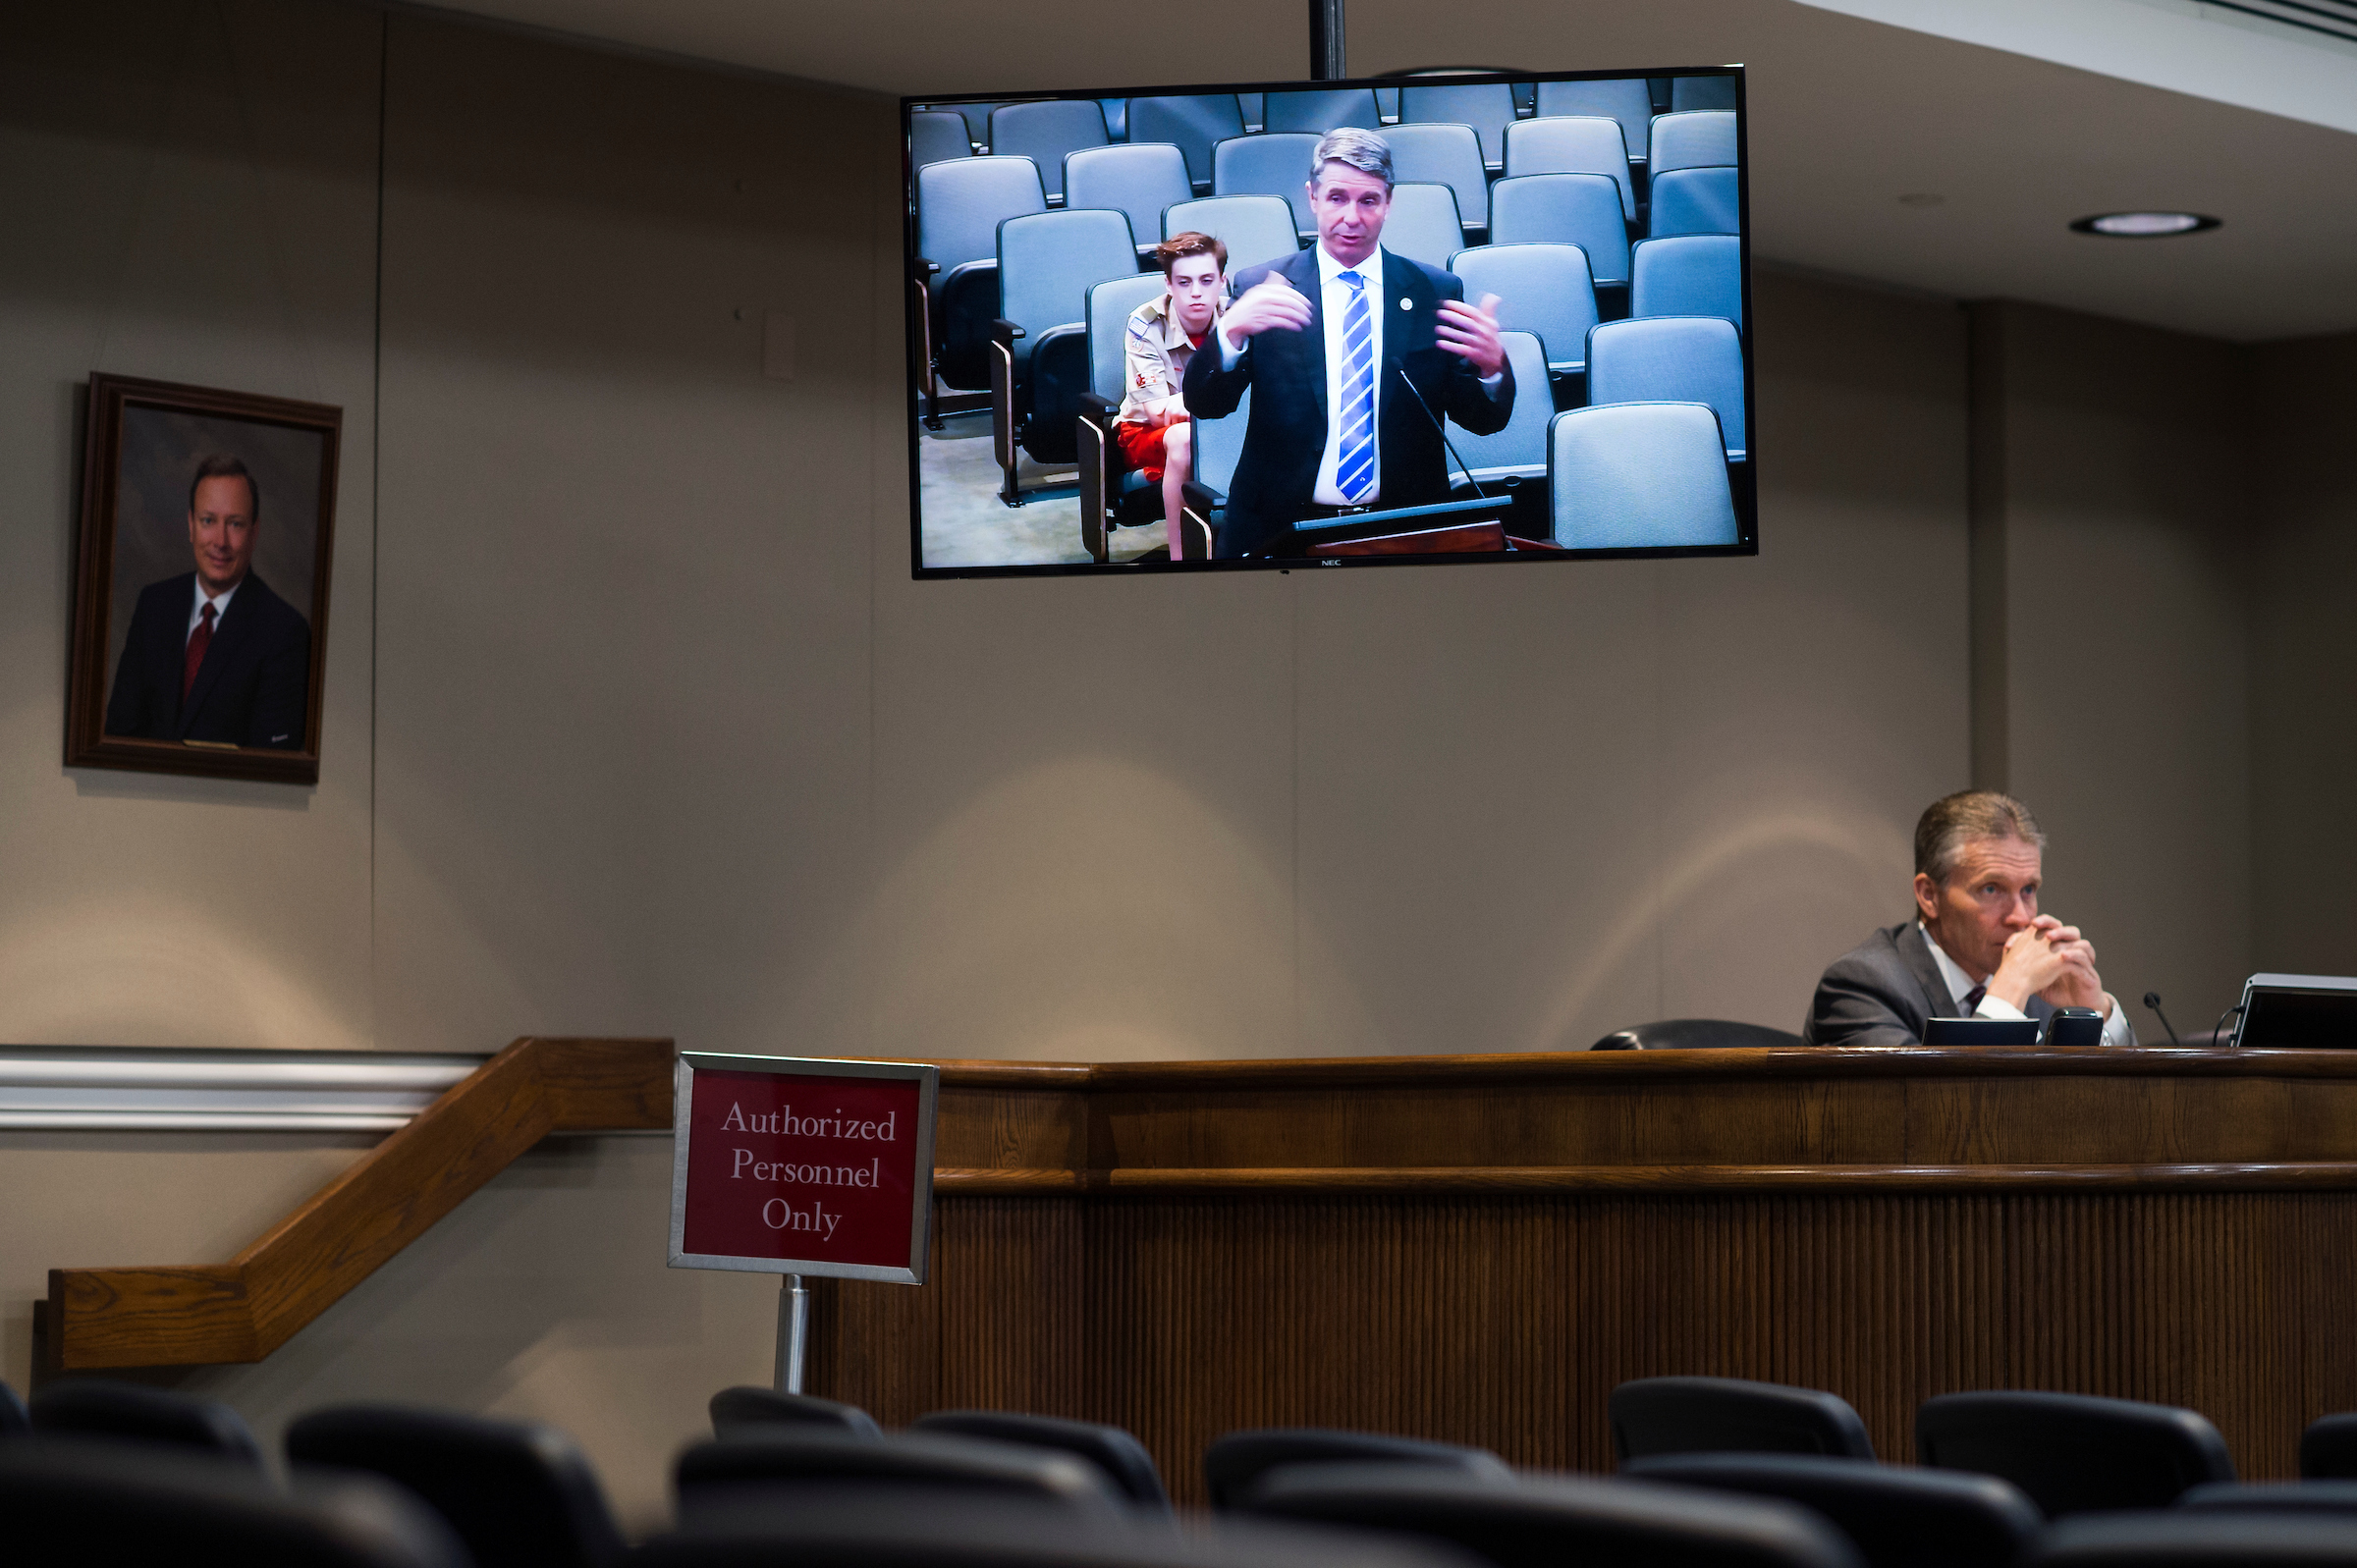 UNITED STATES - APRIL 18: Rep. Rob Wittman, R-Va., is seen on a monitor while addressing a meeting of the Stafford County Board of Supervisors in Stafford, Va., on April 18, 2017. (Photo By Tom Williams/CQ Roll Call)